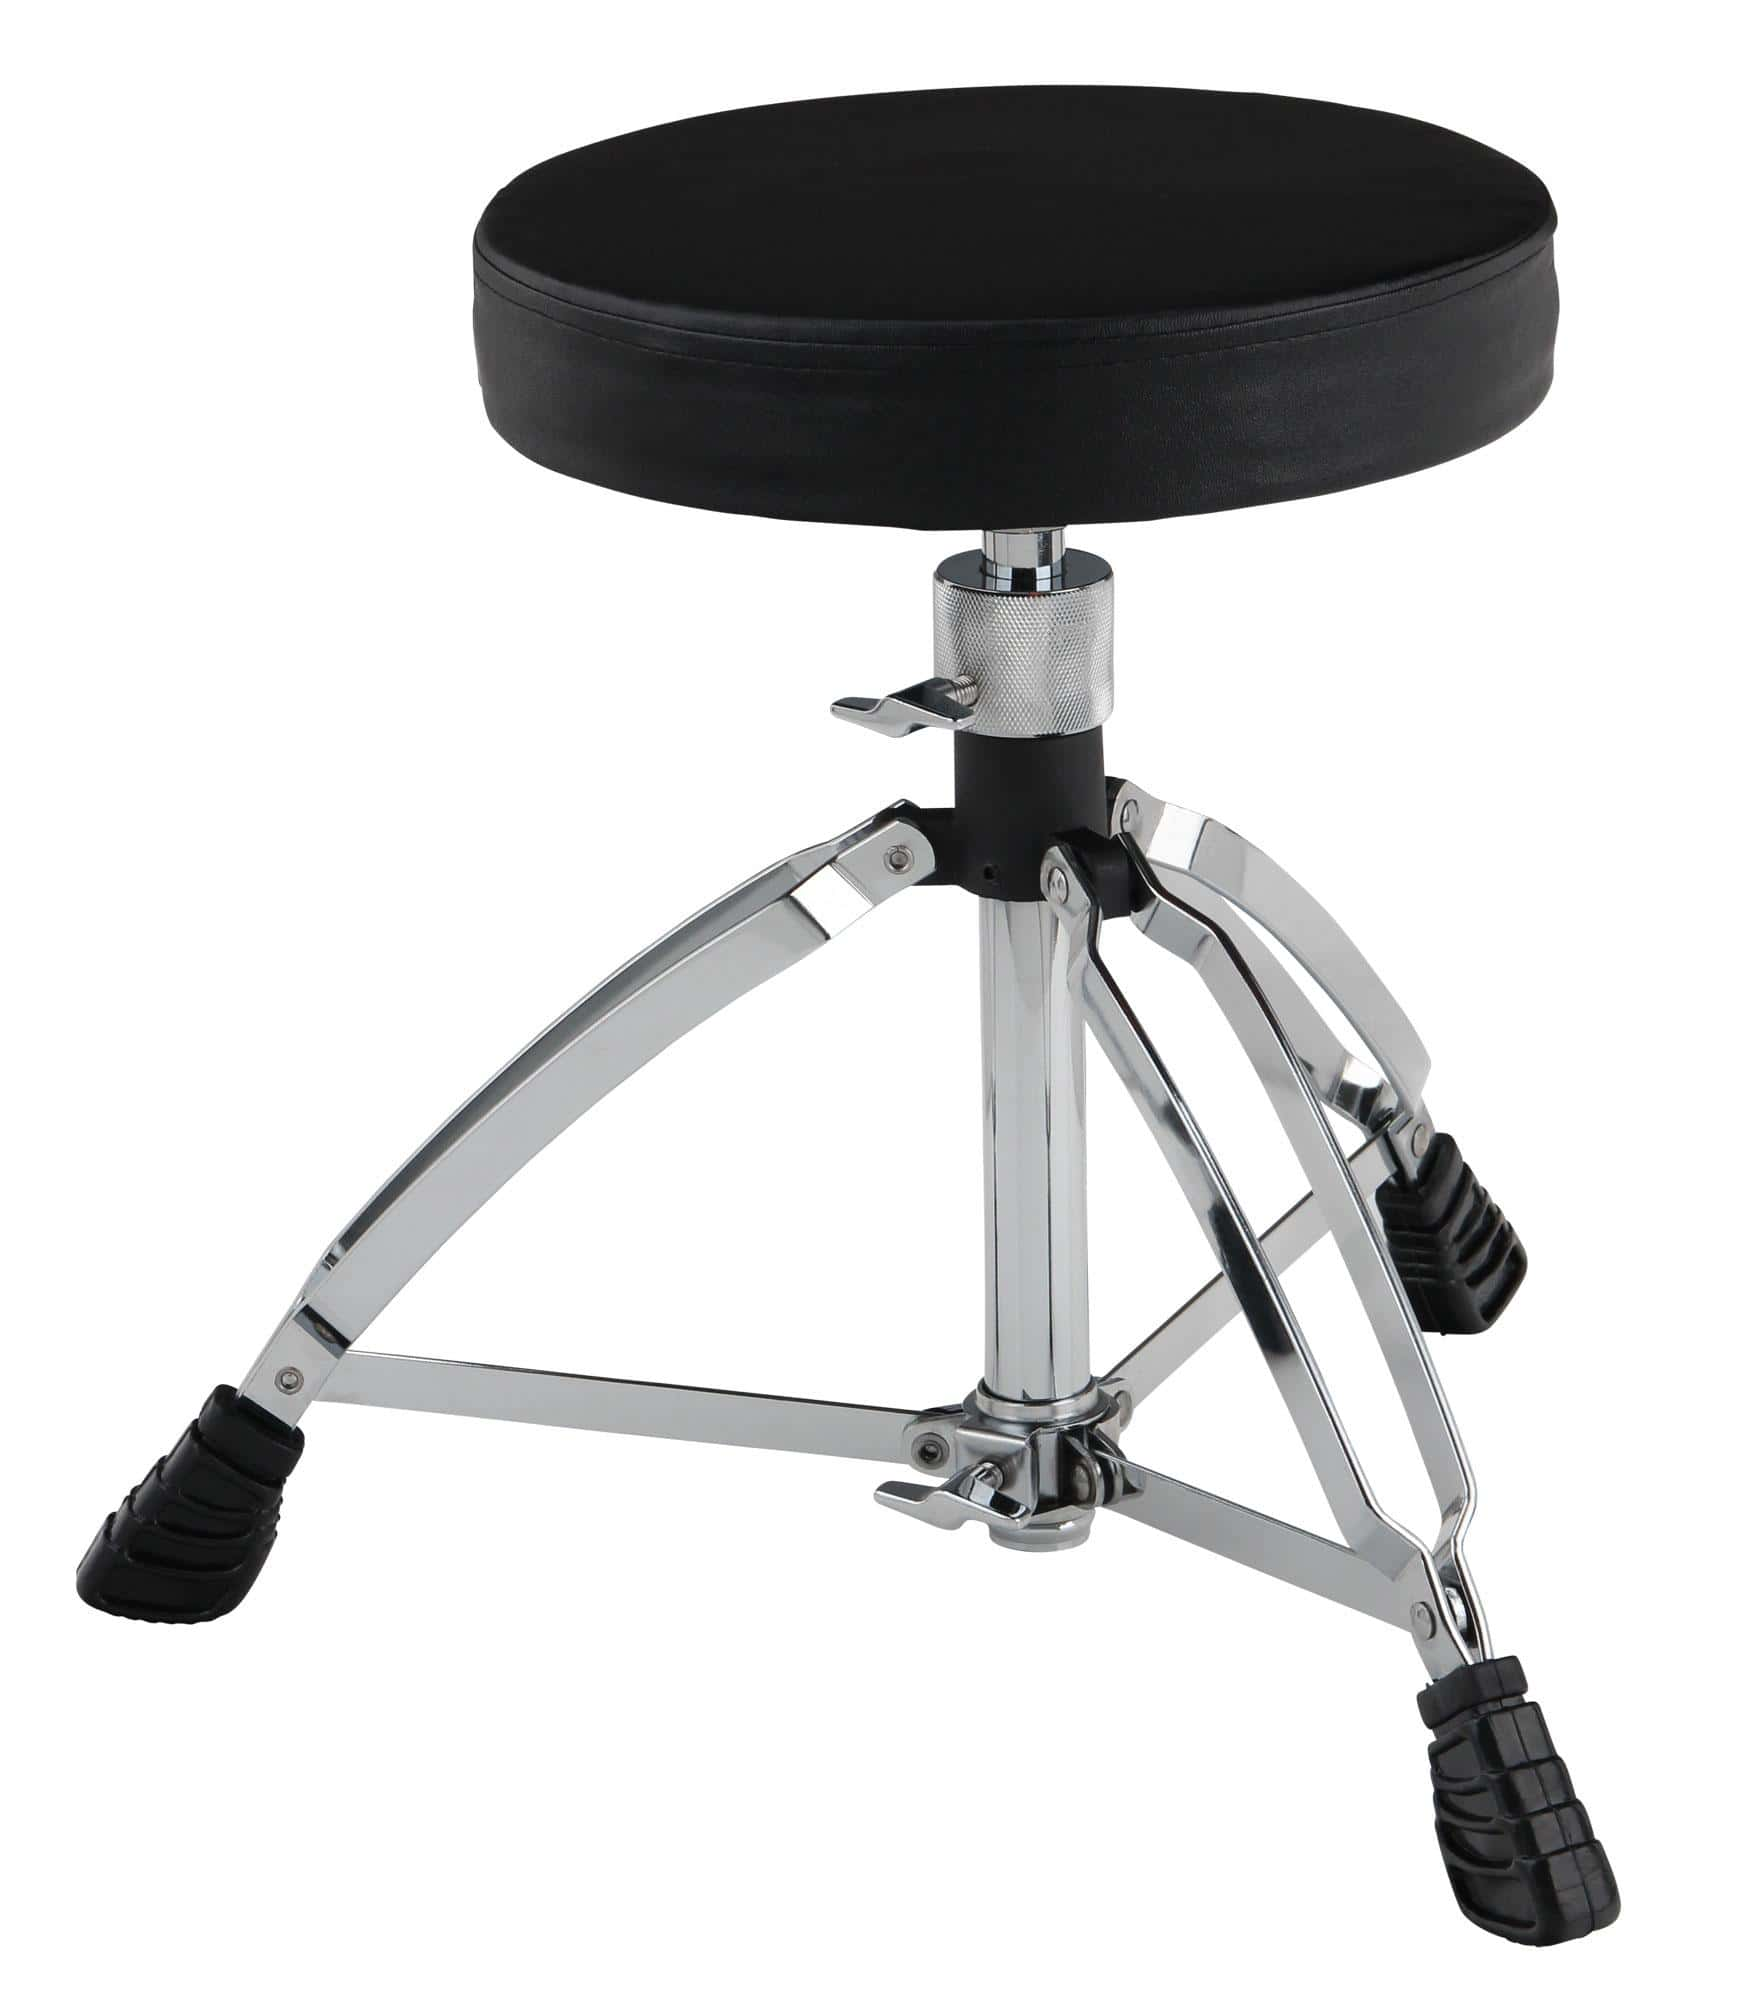 Xdrum Dt 1000 Drum Stool With Spindle Double Braced